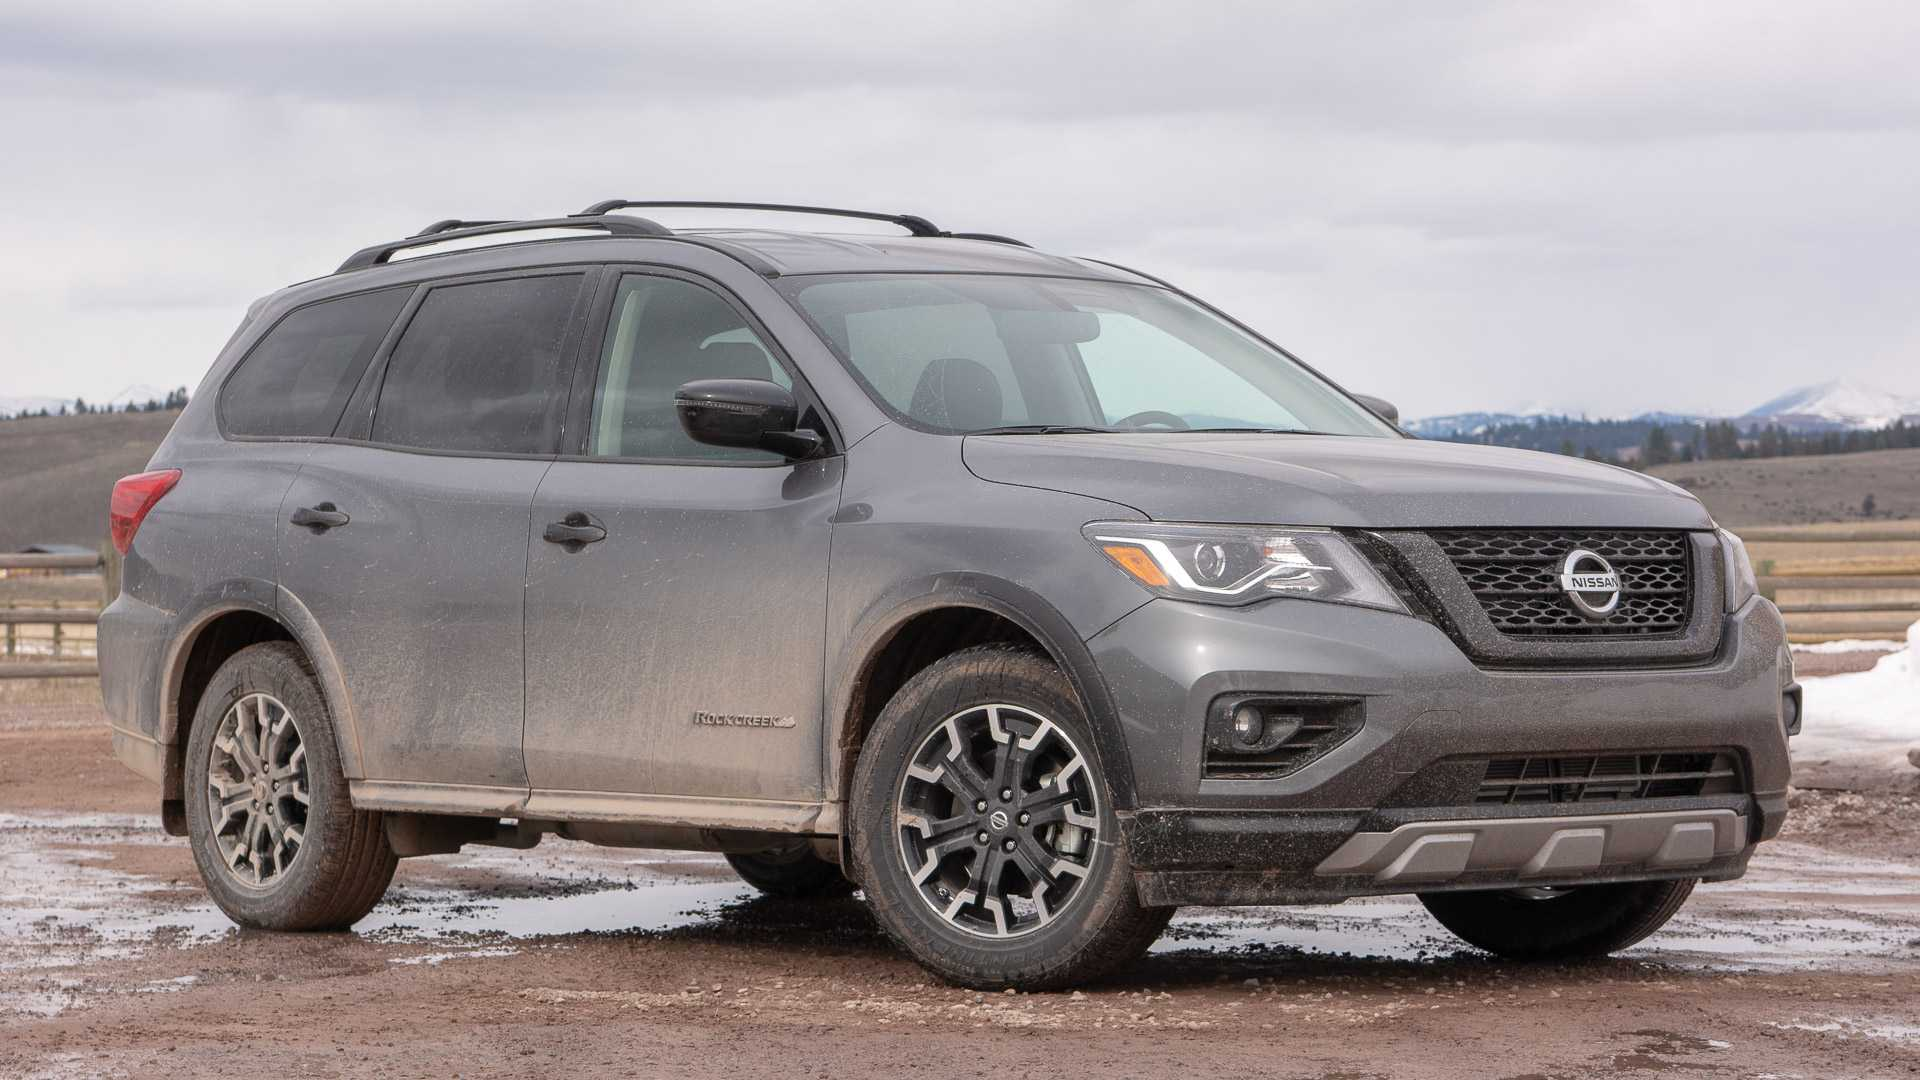 59 The Best 2019 Nissan Pathfinder Spy Shots Prices